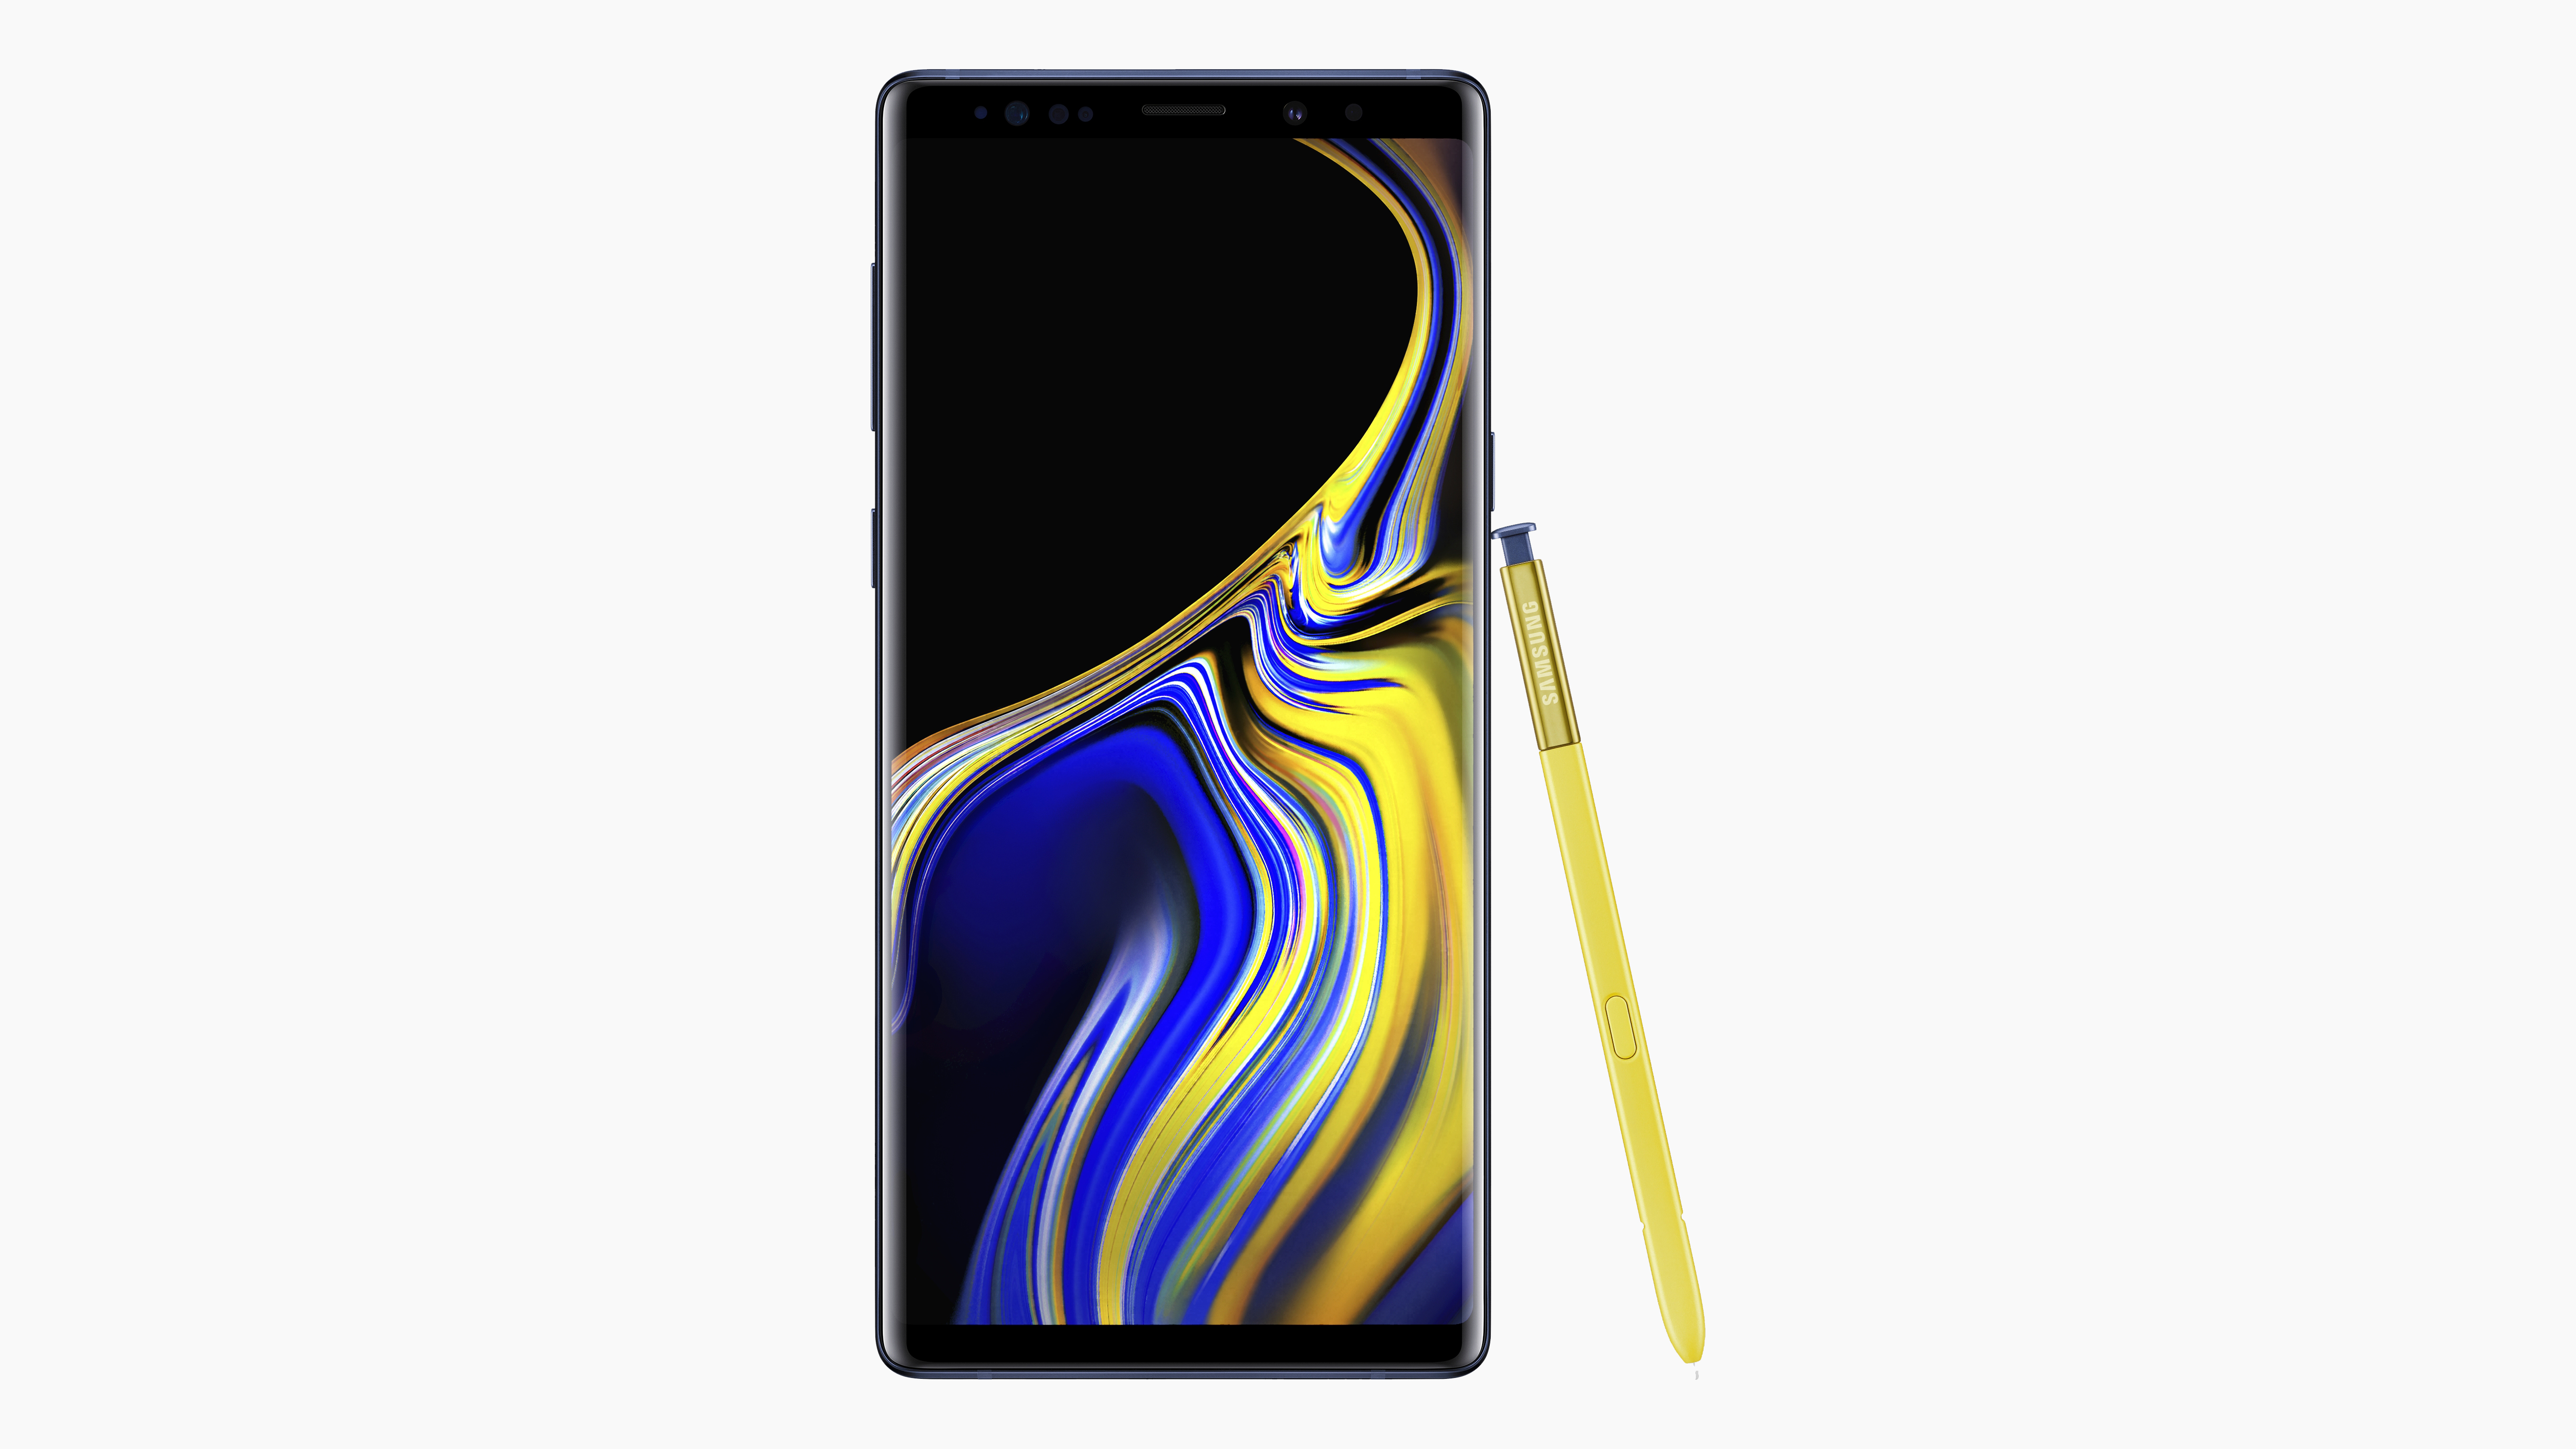 Samsung Galaxy Note 9 review: Is it worth picking up? — Quartz